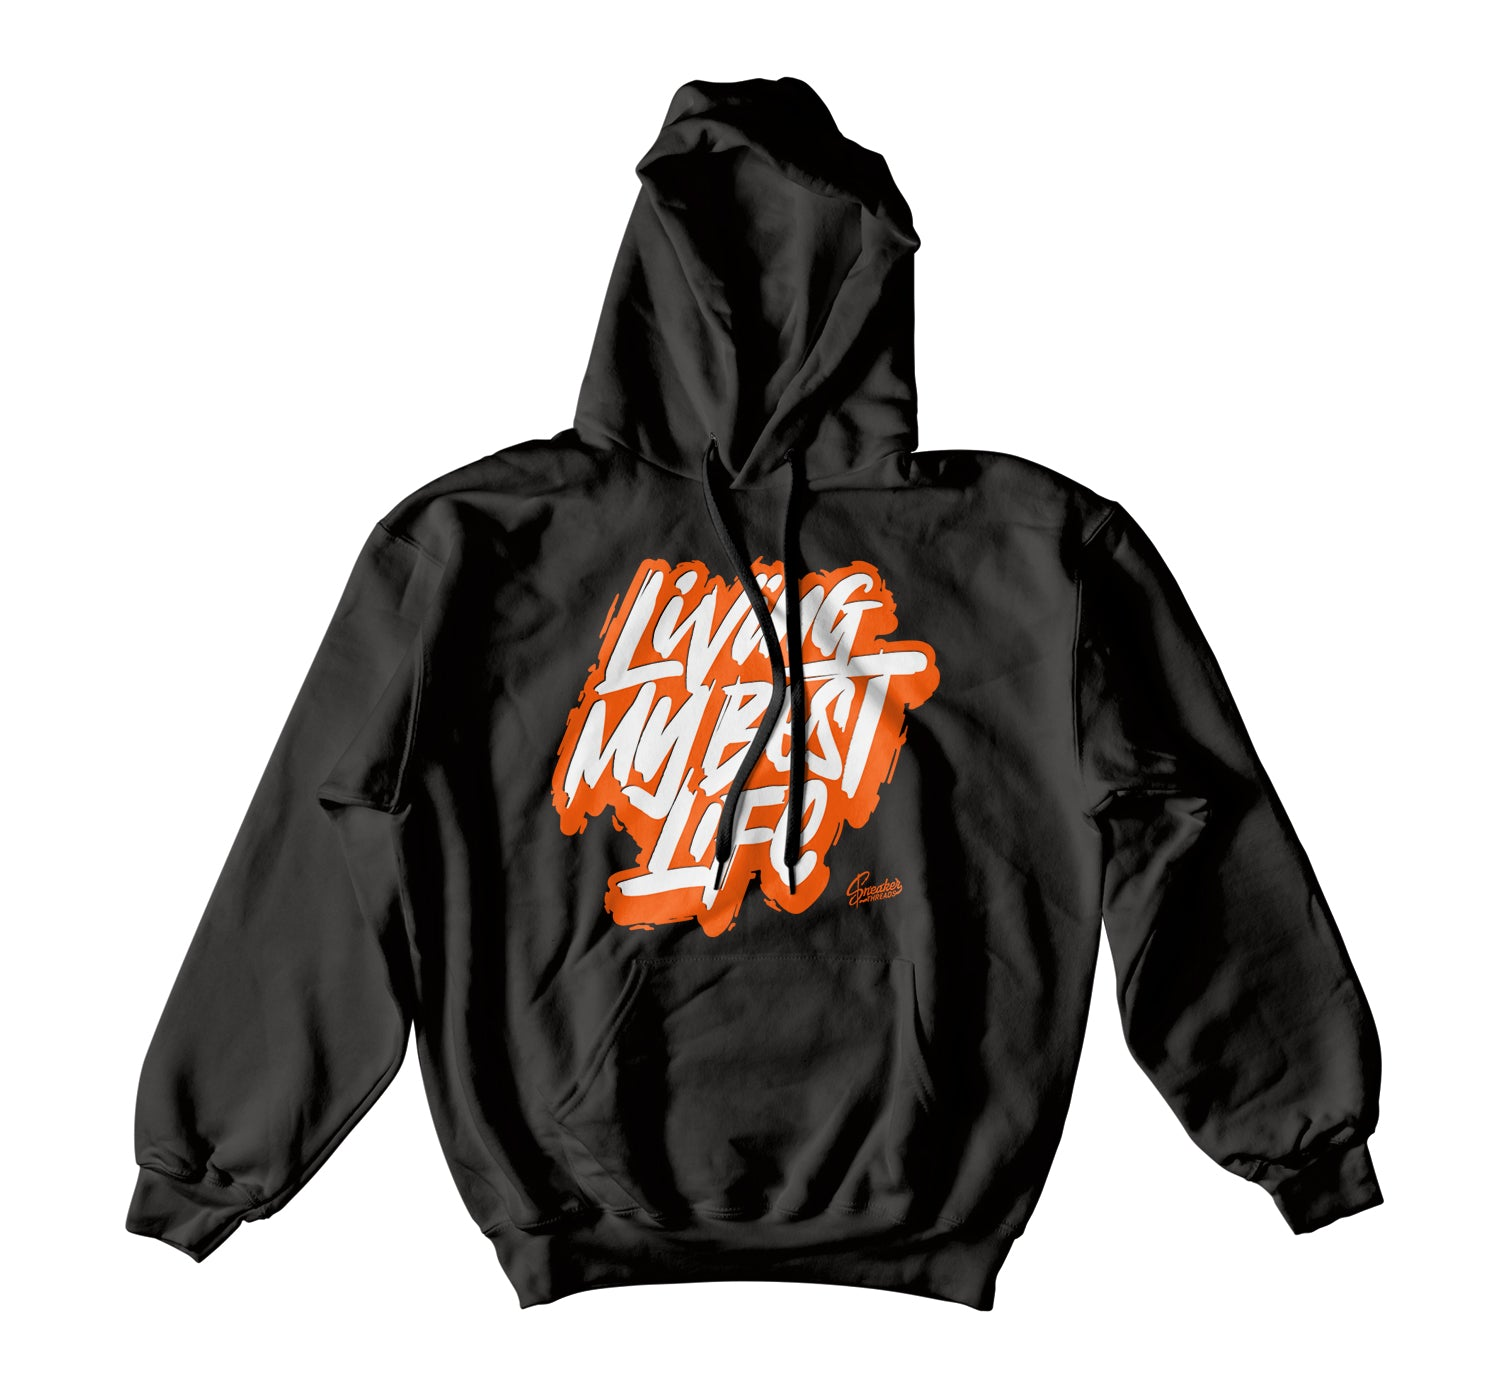 Foamposite Shattered Backboard Hoody - Living Life - Black